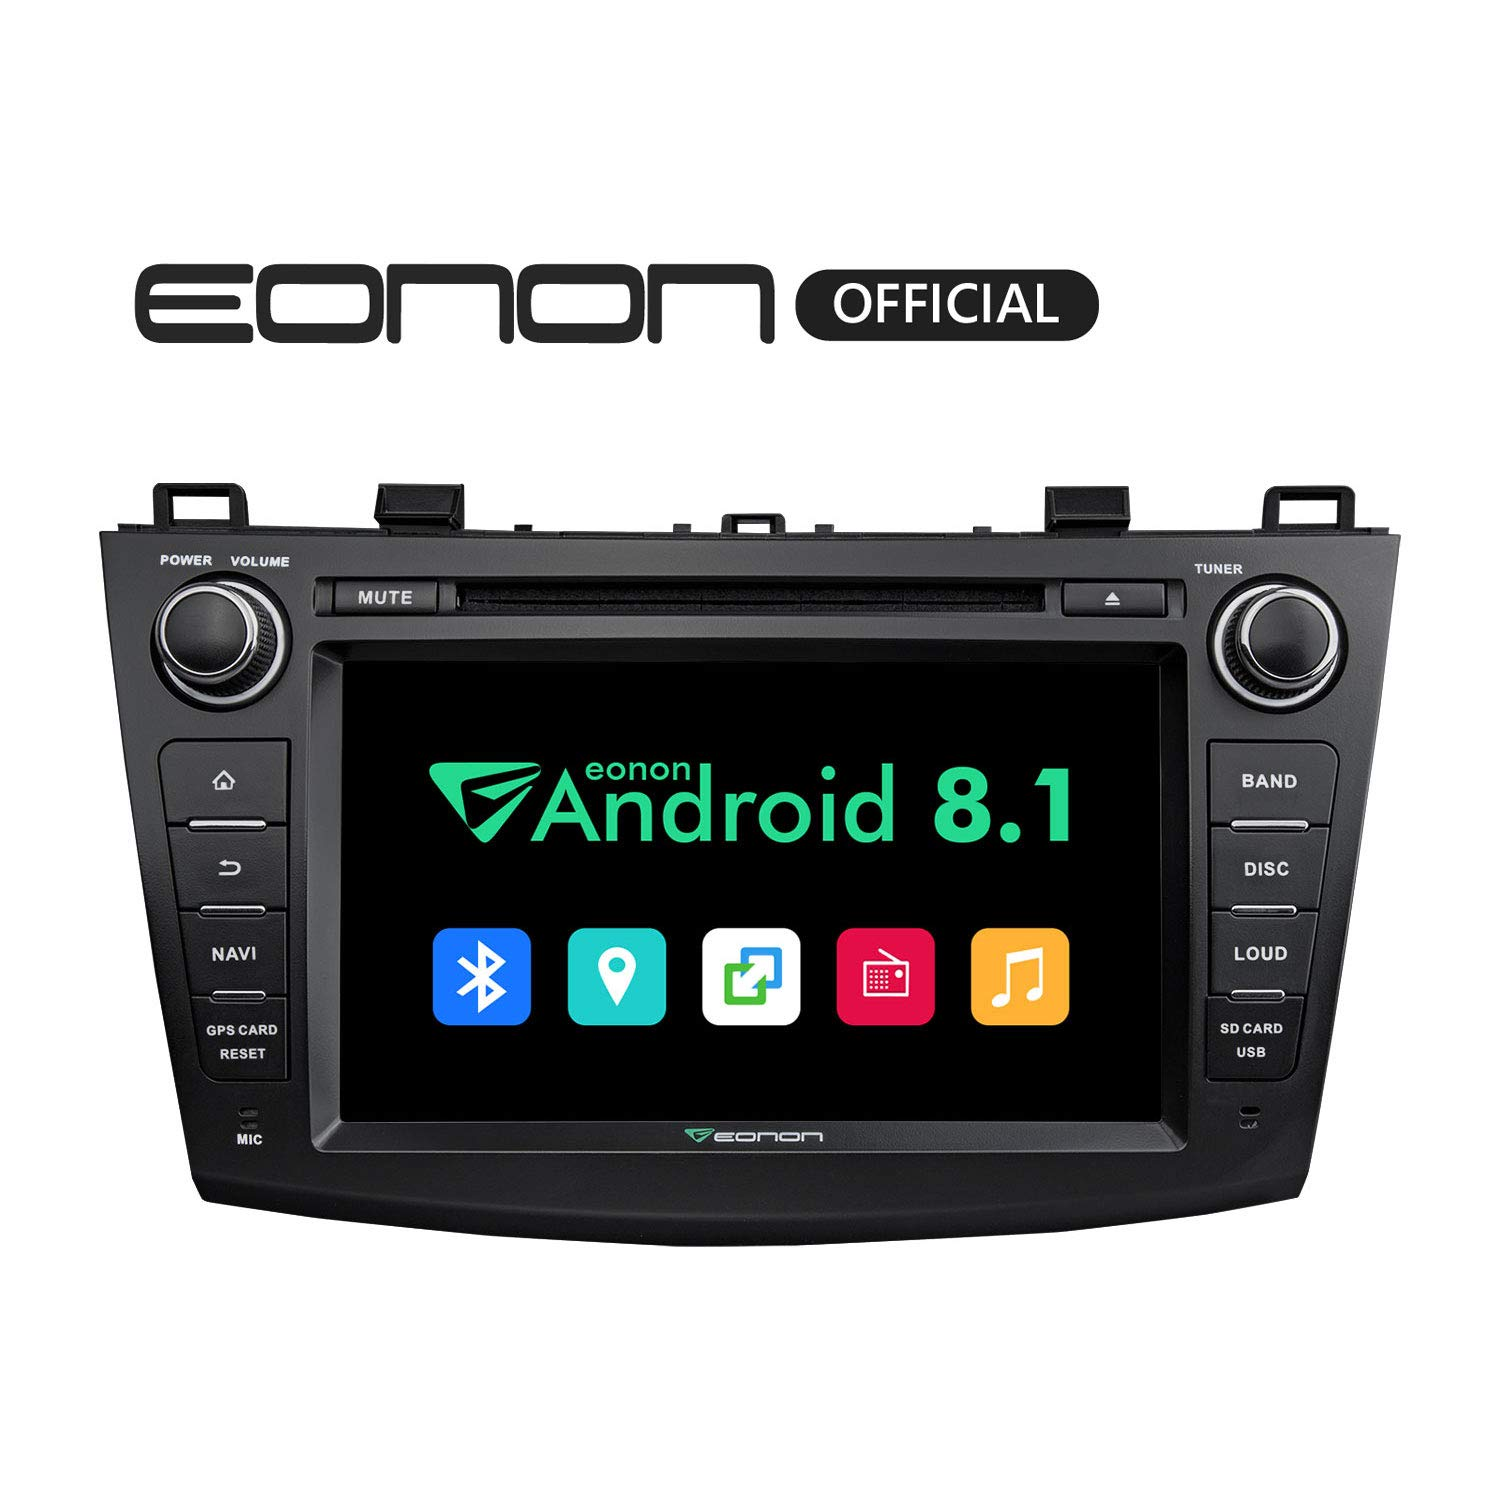 Eonon Double Din Android Auto Car Stereo, Android 8 1 Car Radio 2GB RAM  +16GB ROM Quad-Core 8 Inch in Dash Touch Screen Radio Audio Applicable to